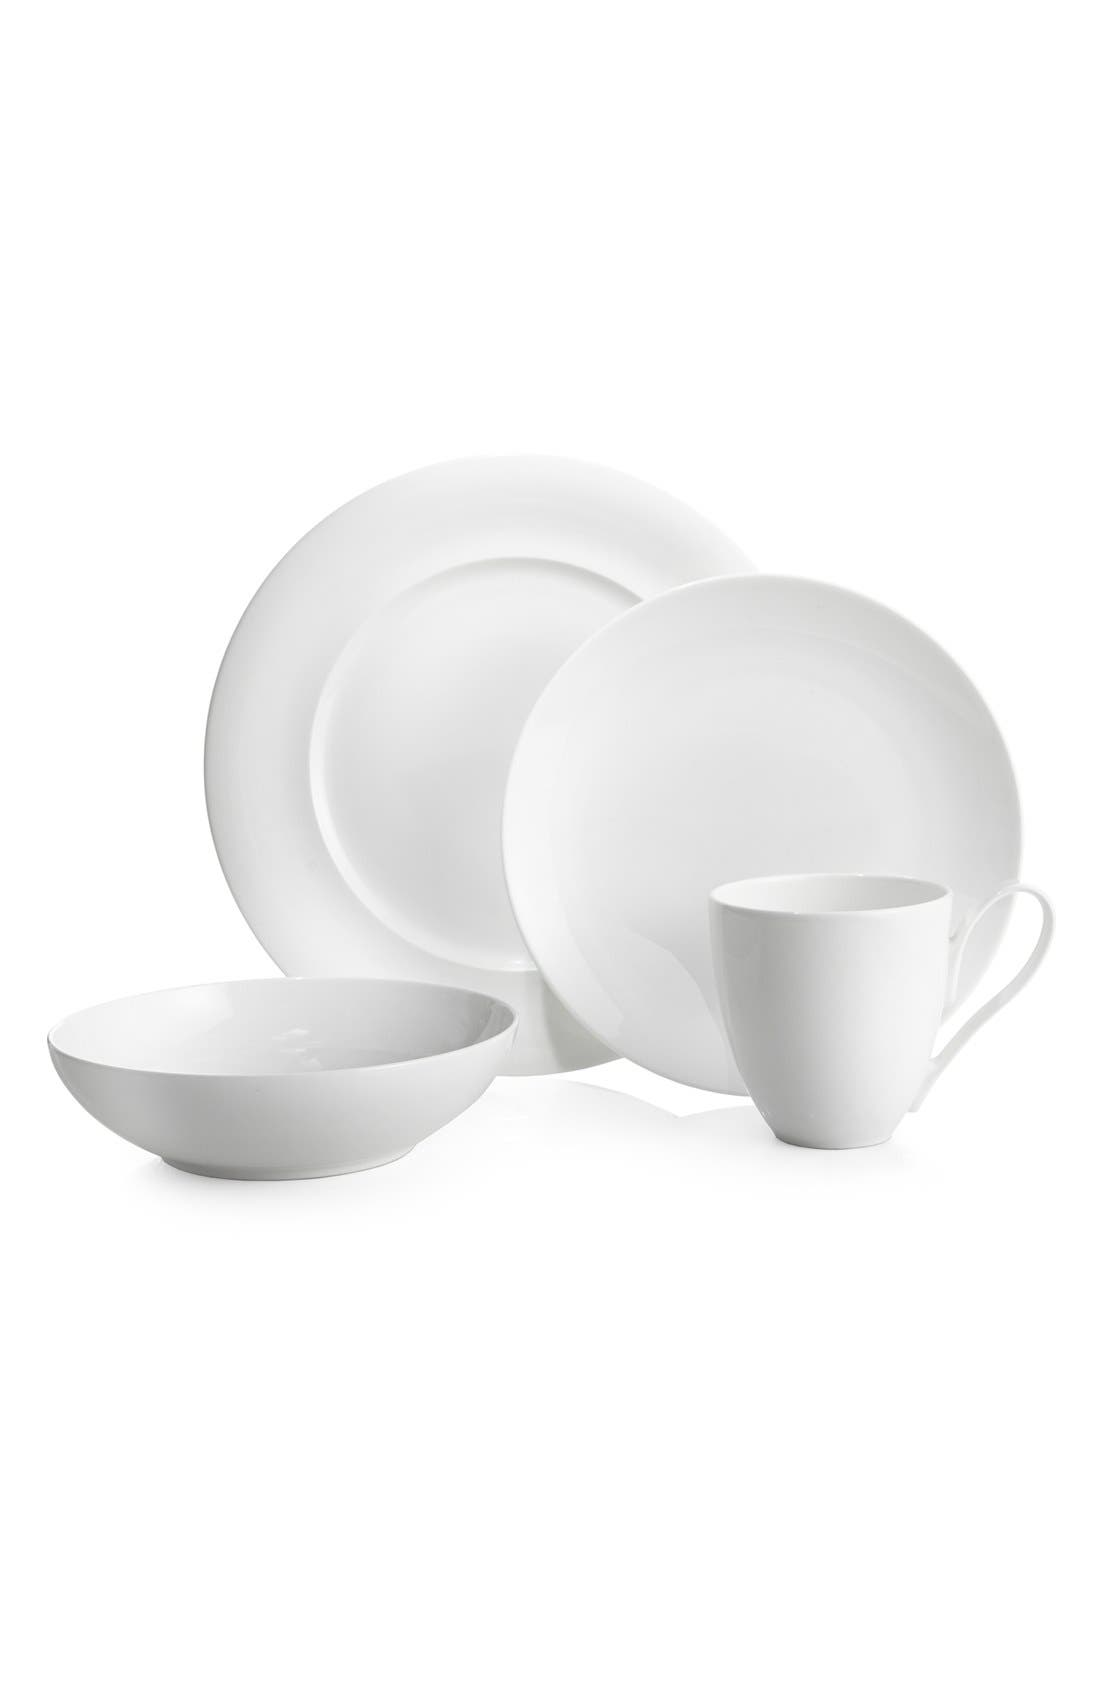 'Skye Collection' 4-Piece Bone China Place Setting,                         Main,                         color, WHITE